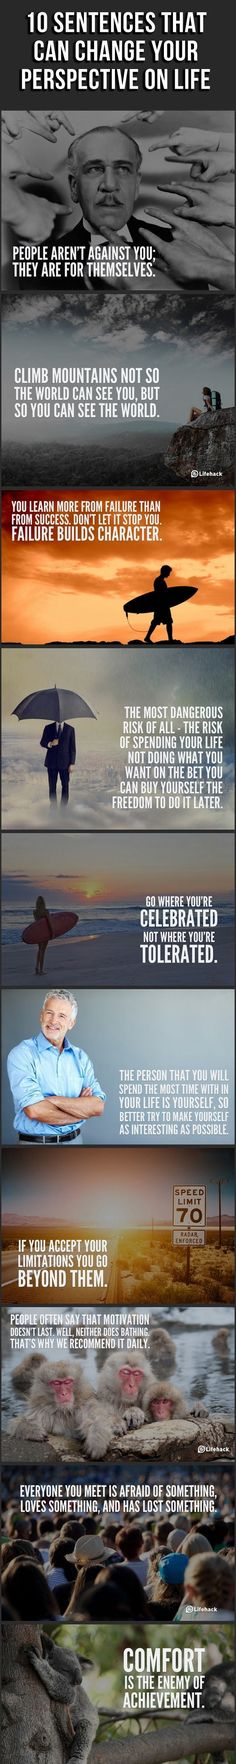 #Adlandpro Ten sentences that Can Change Your Perspective On LIFE!